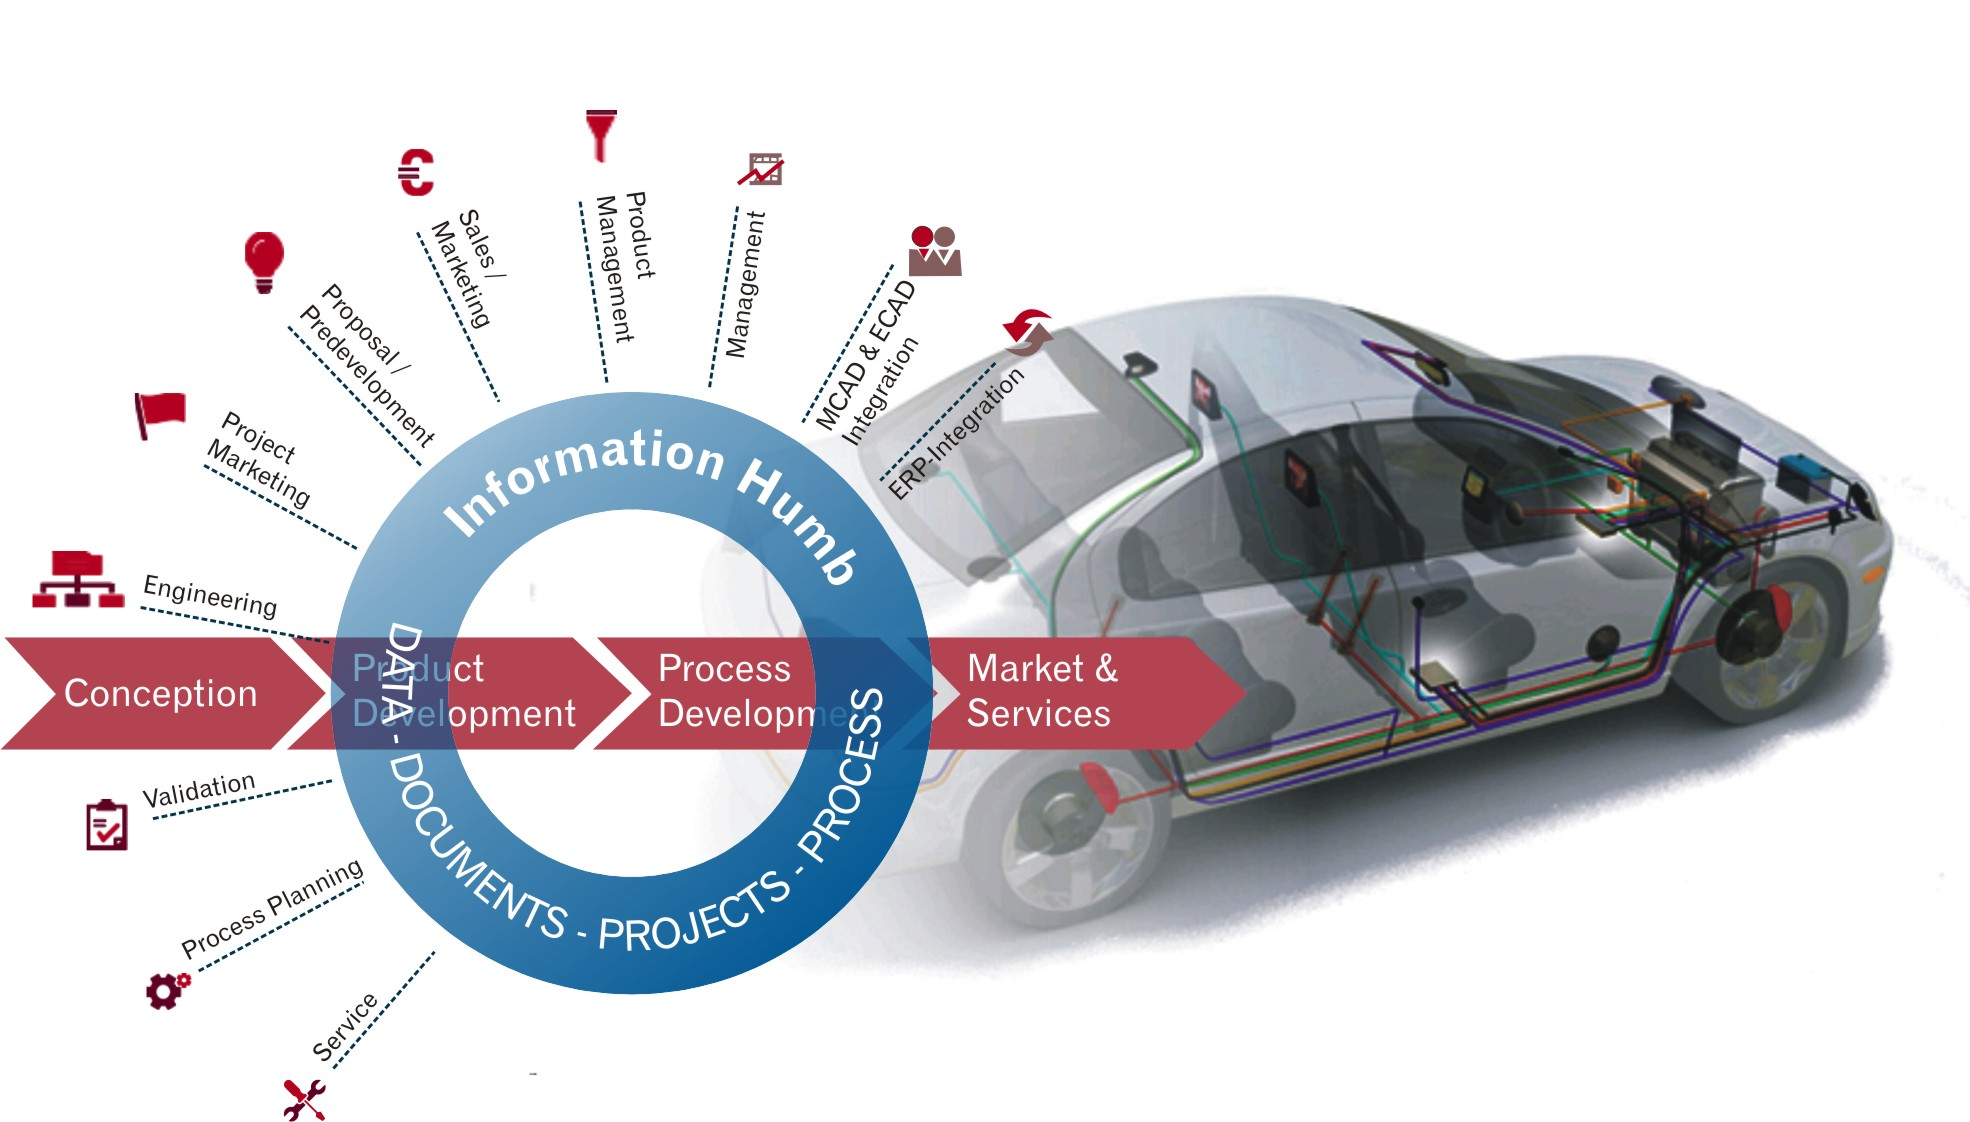 Overcome Roadblocks to PLM Success with Innovative Platforms